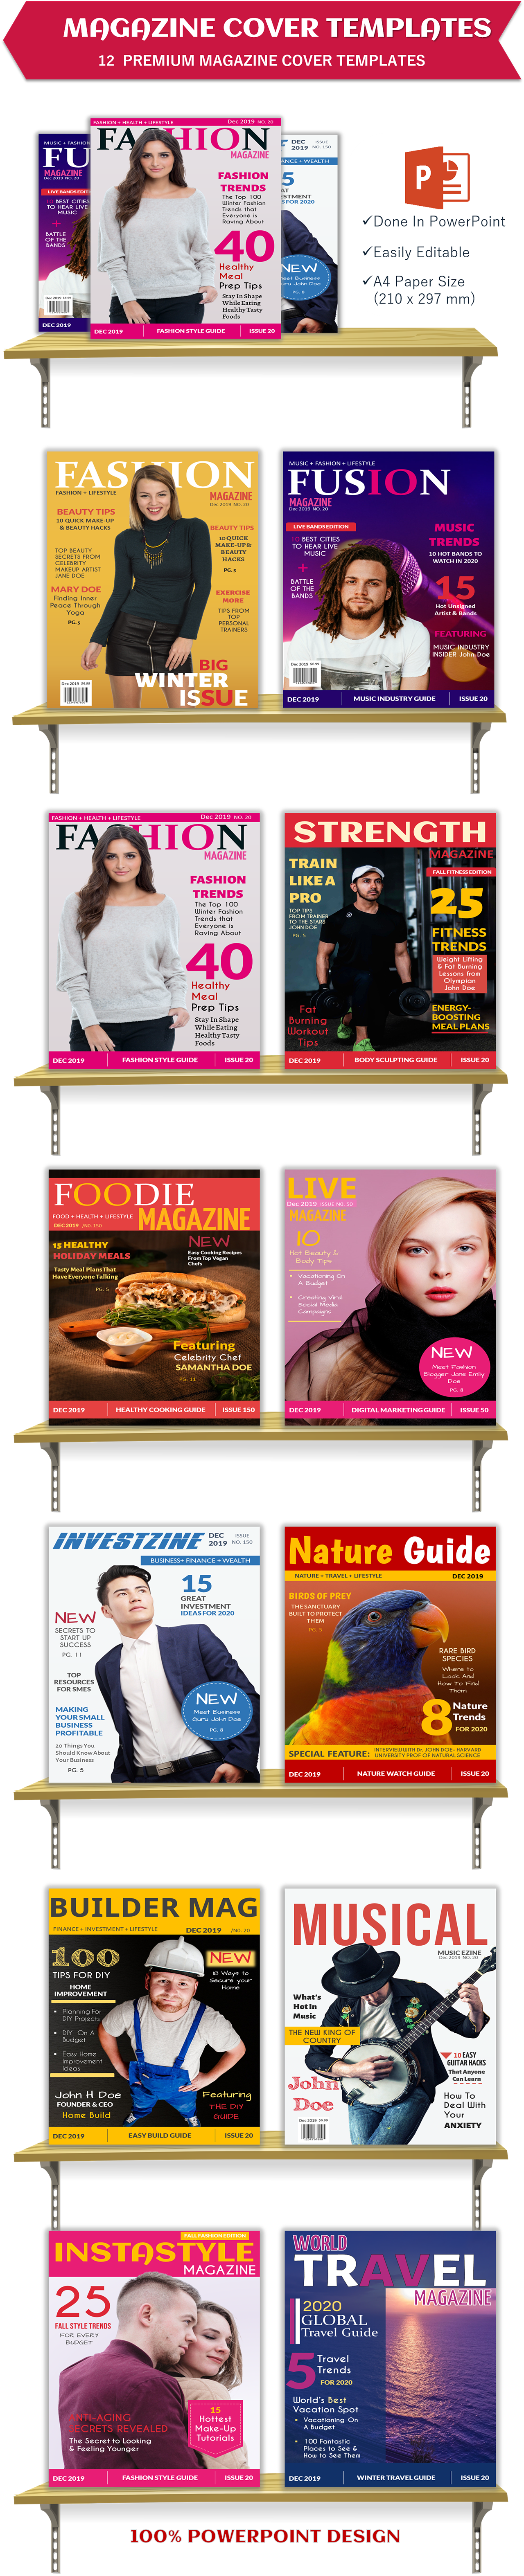 Magazine_Cover_Display_2